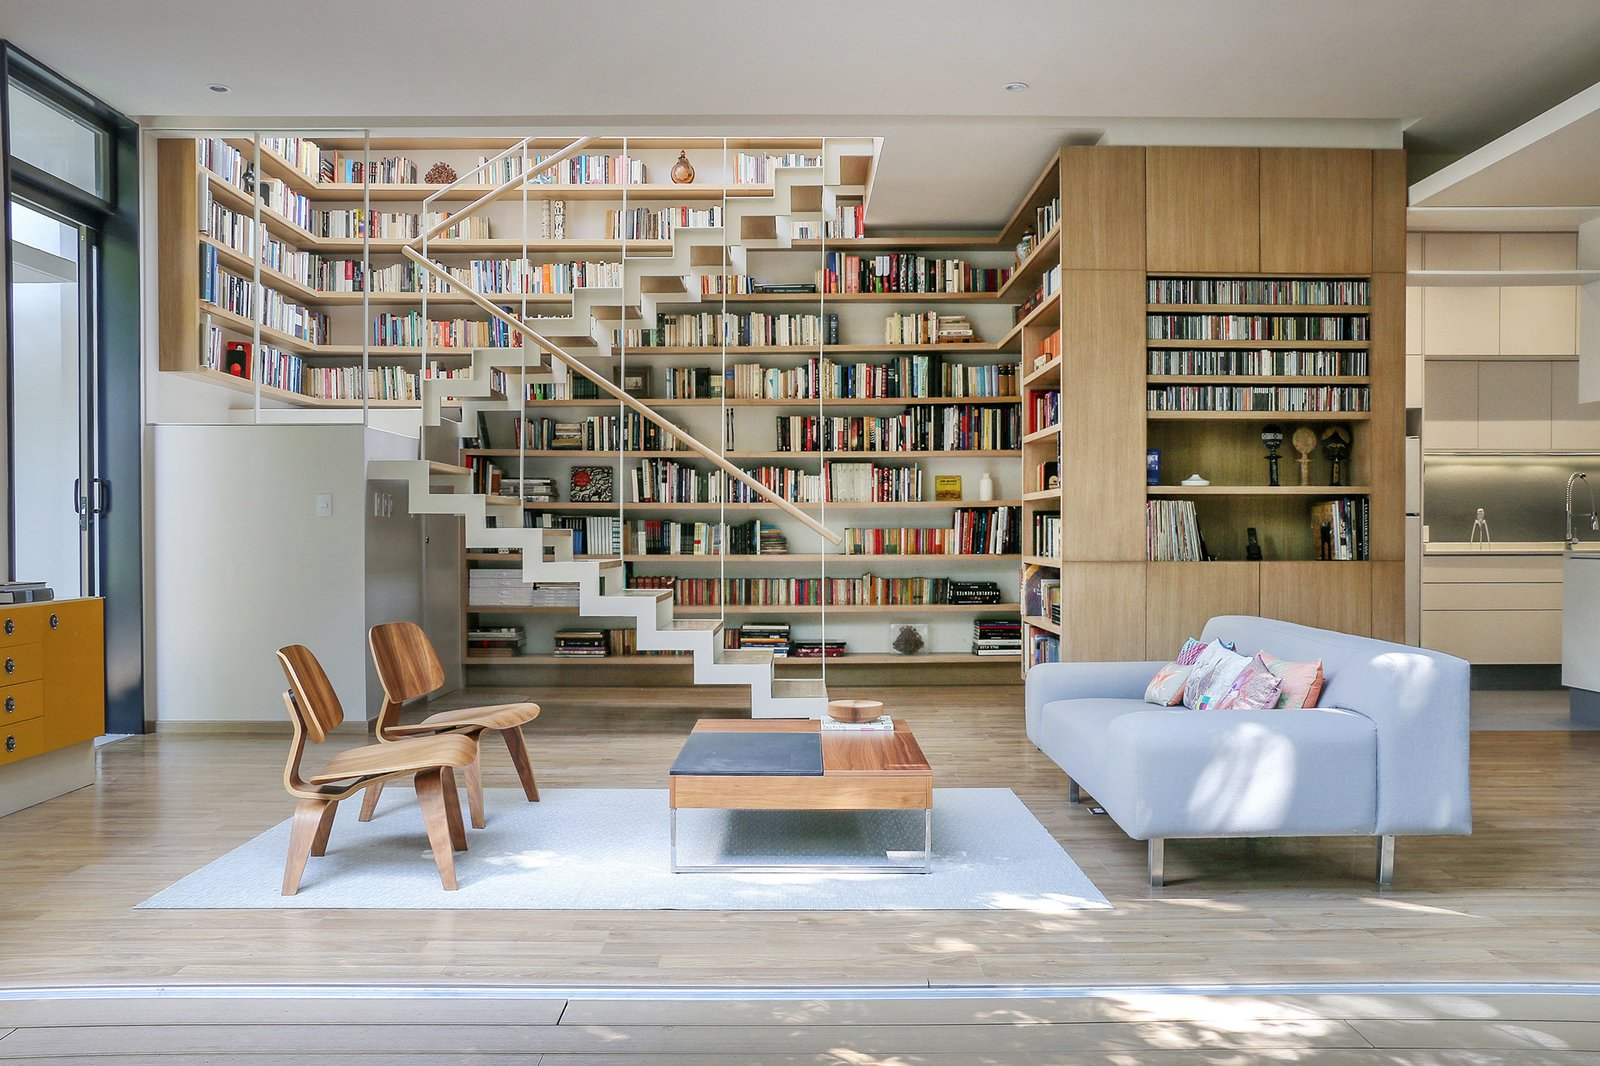 A pair of Molded Plywood lounge chairs by Charles and Ray Eames for Herman Miller sit opposite a BoConcept coffee table and a sofa of Paul's design. For his father's book collection, Paul created a library around the double-height staircase. Tagged: Chair, Sofa, Light Hardwood Floor, Shelves Storage Type, Staircase, Wood Tread, and Wood Railing.  Photo 12 of 13 in Retired Couple Build Modern in Mexico City